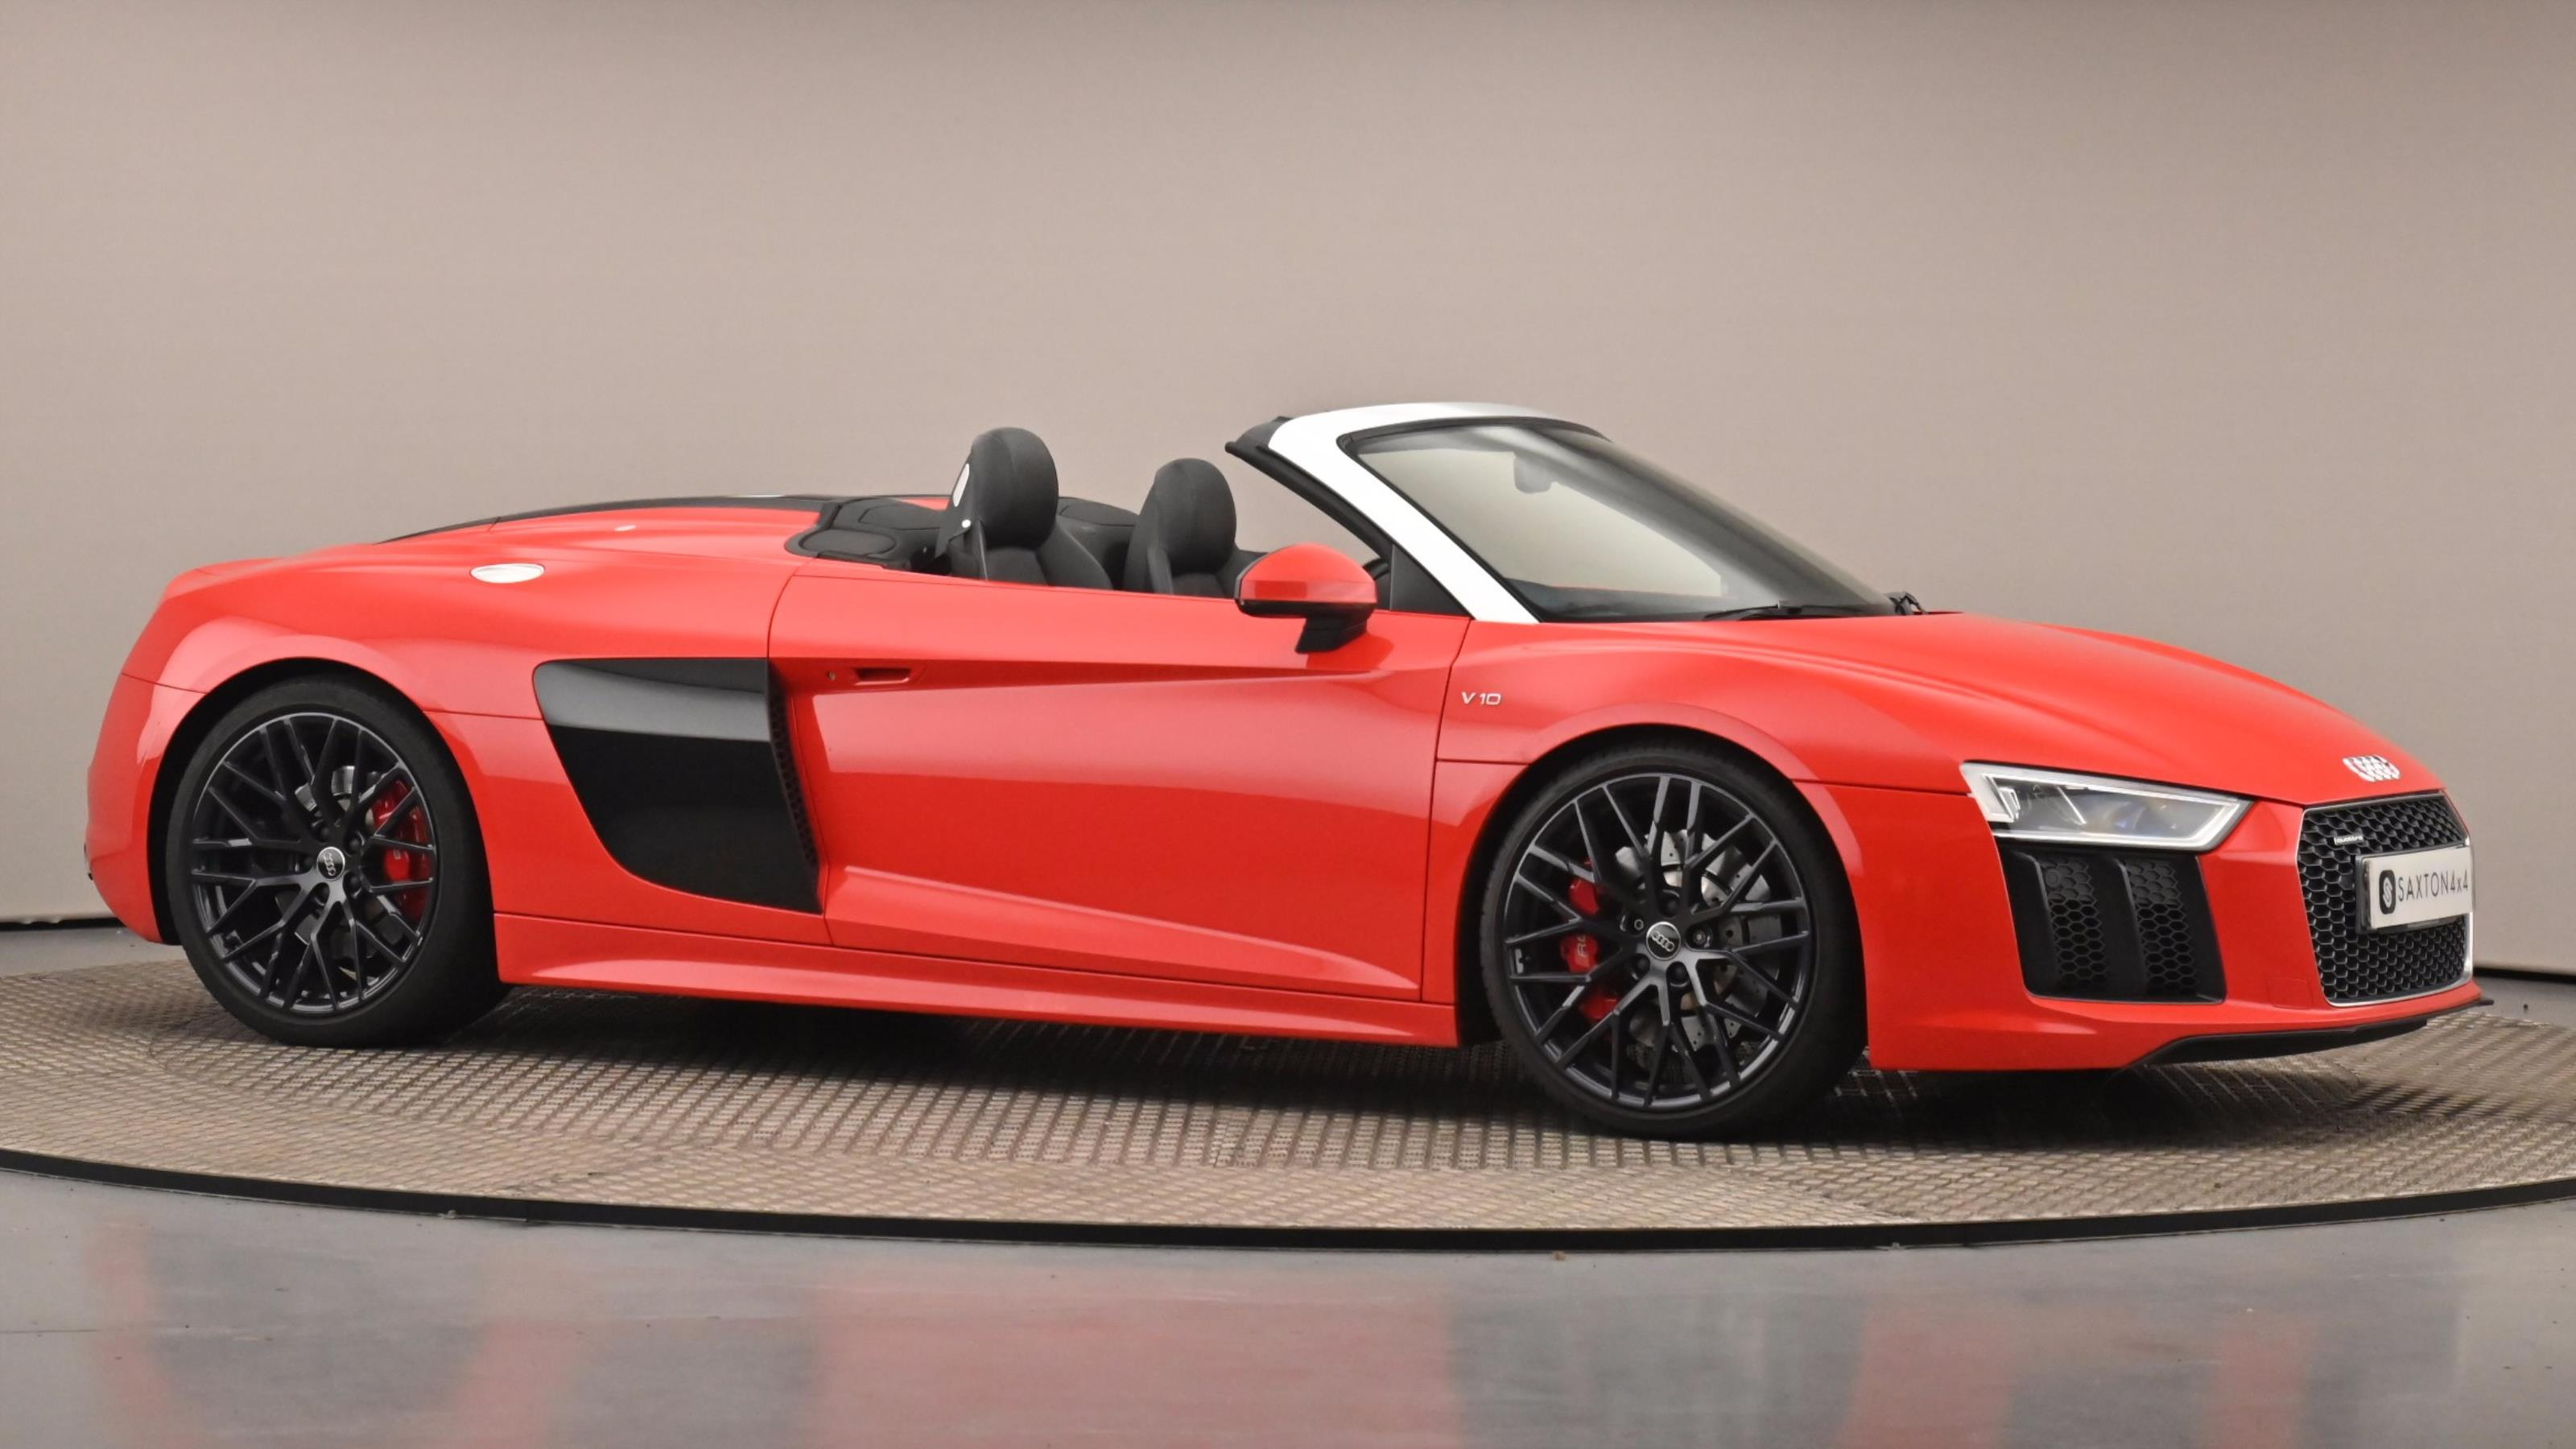 Used 2016 Audi R8 5.2 FSI V10 Quattro 2dr S Tronic Red at Saxton4x4